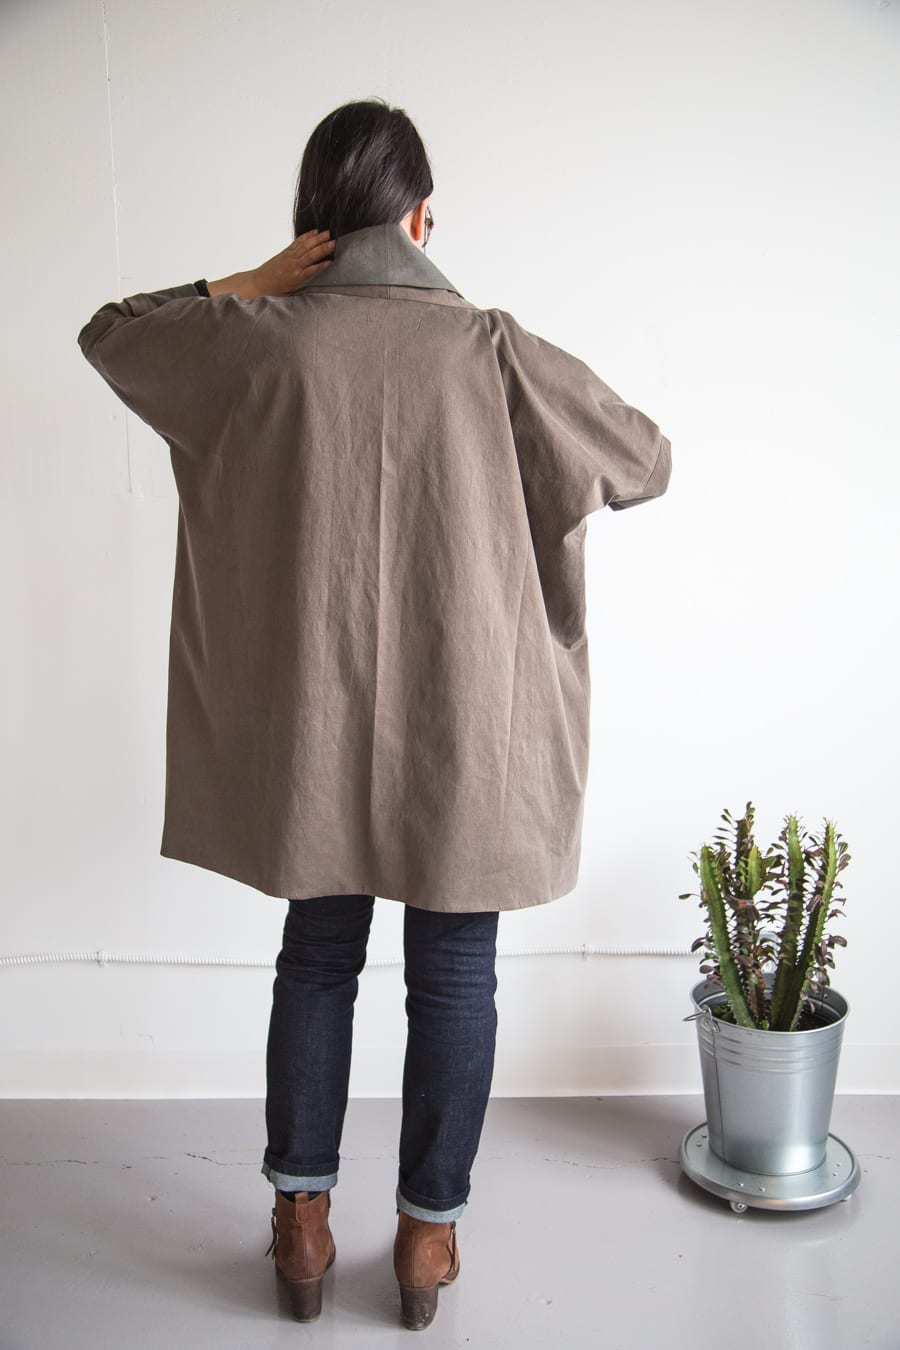 Oversized Kimono Jacket from Making Zine // Handmade by Closet Case Patterns